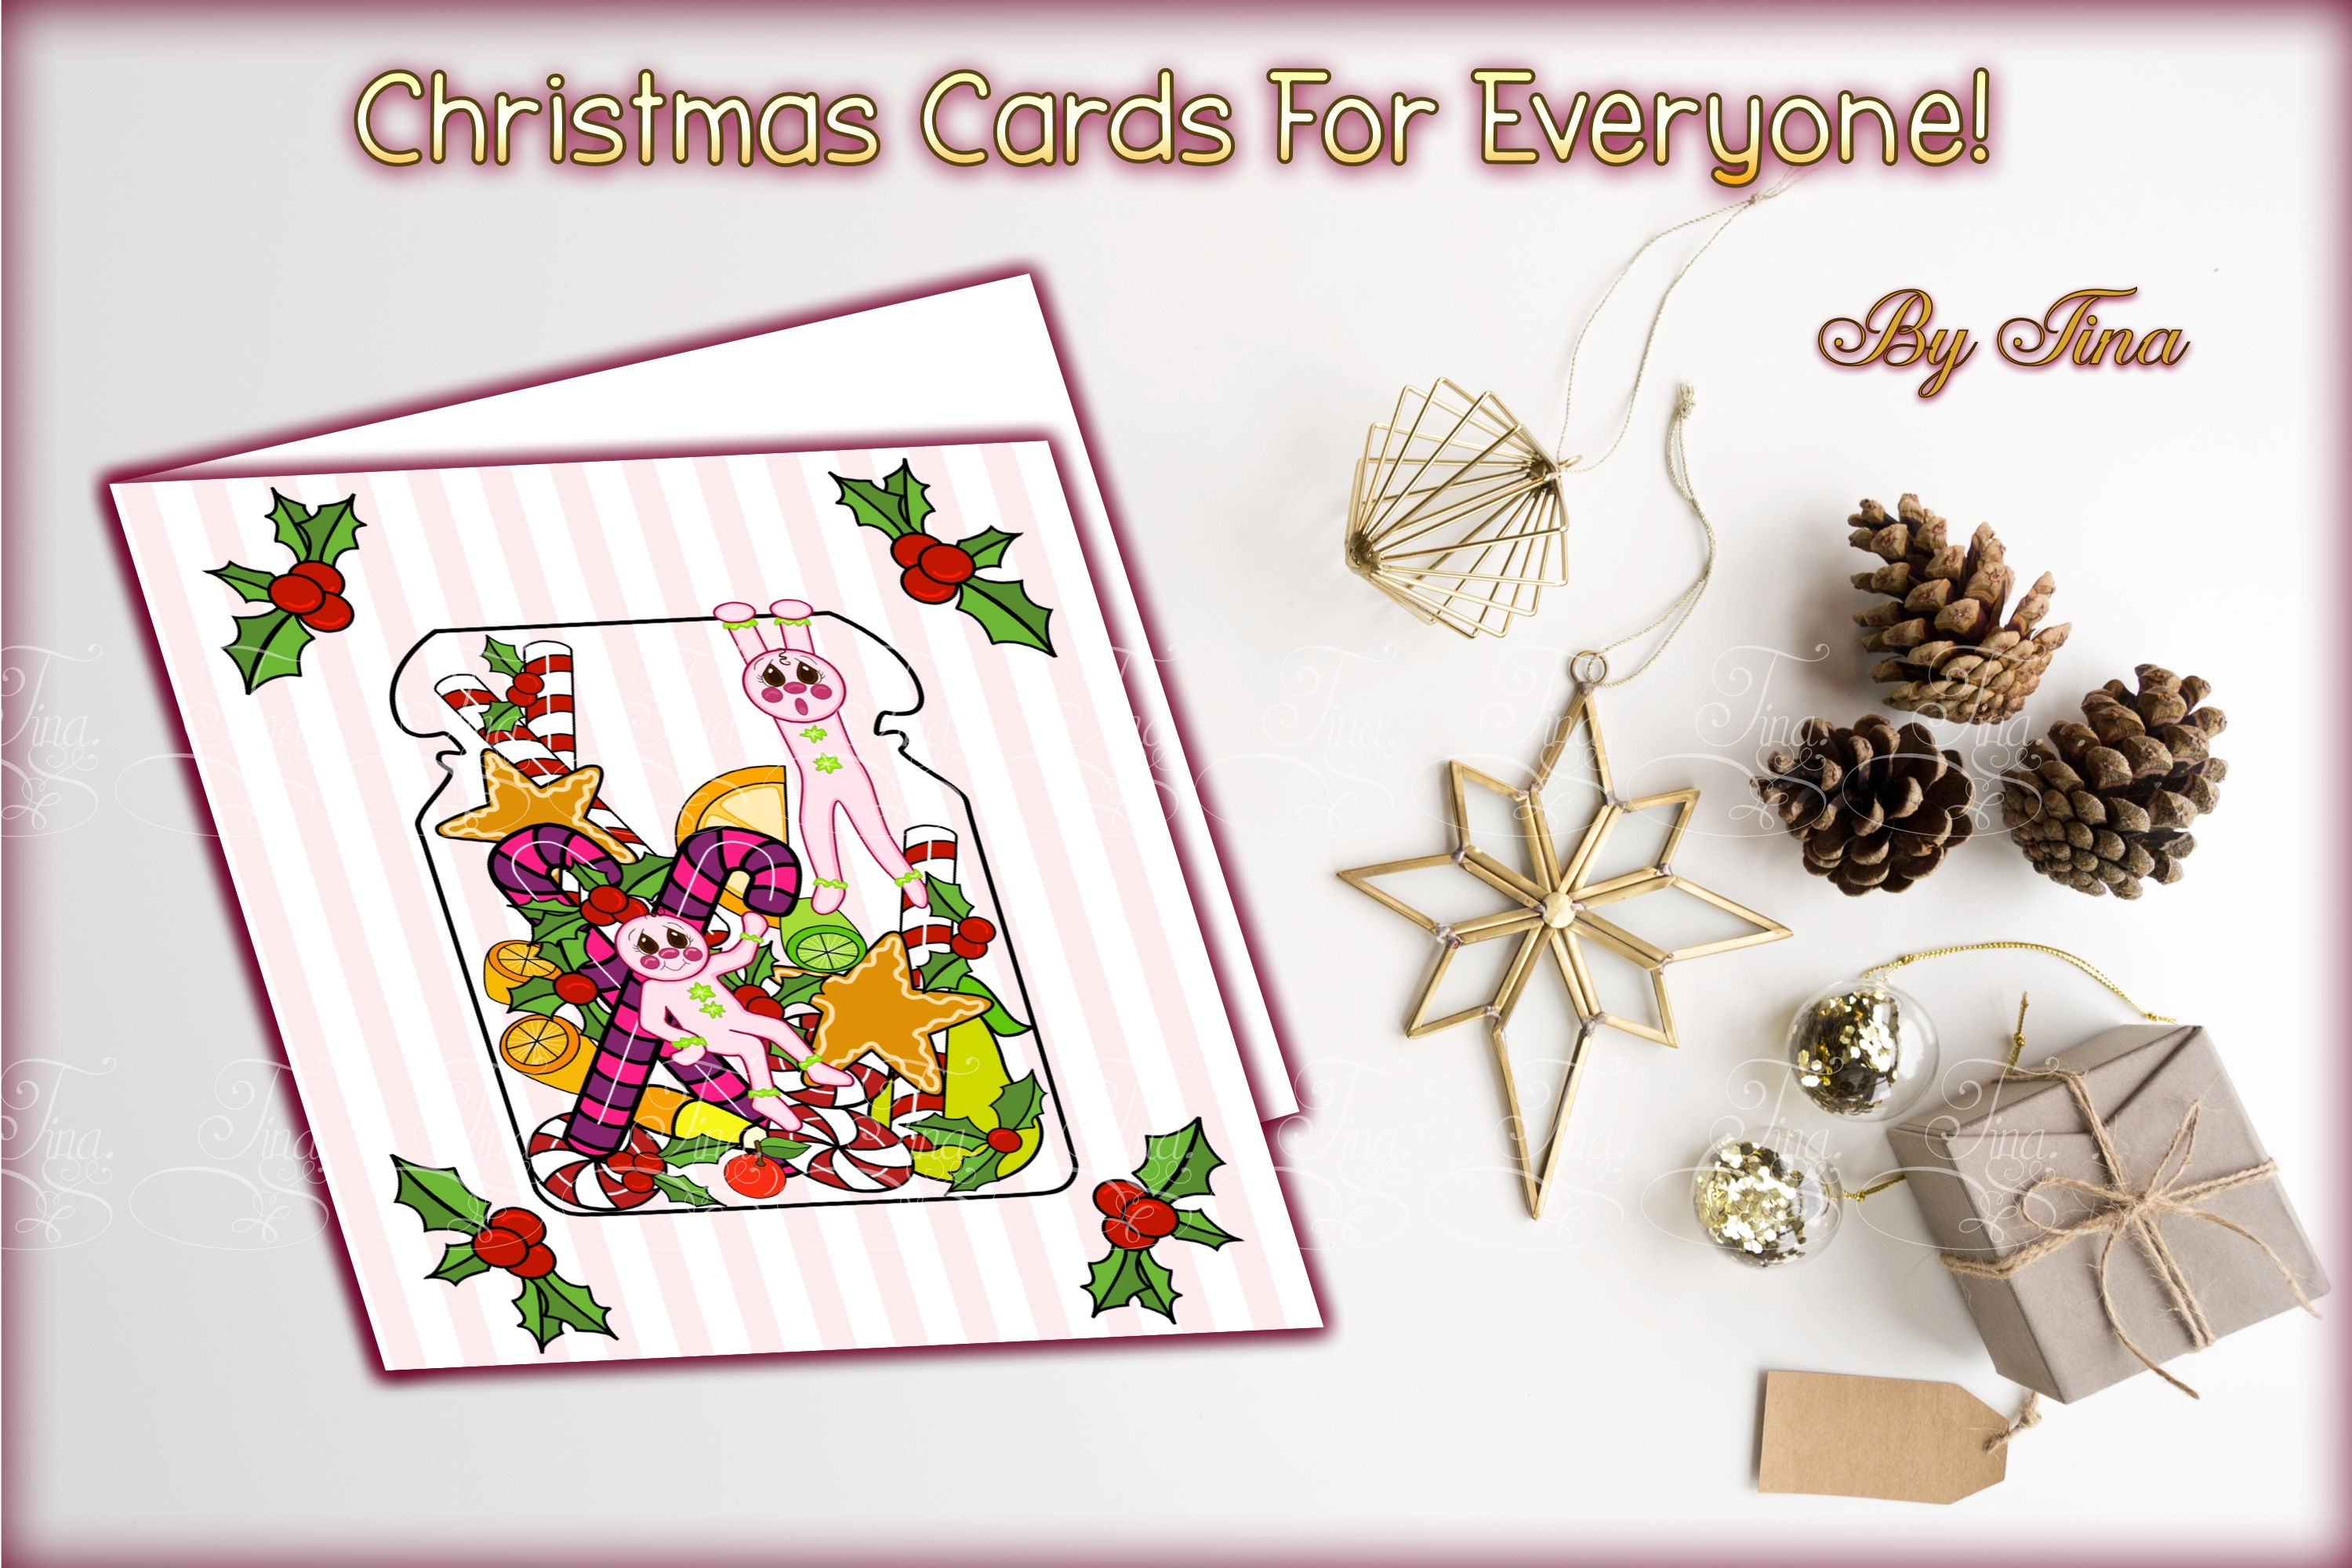 Christmas Sugar and Spice Pink Gingerbread Men 111218SSGB example image 2